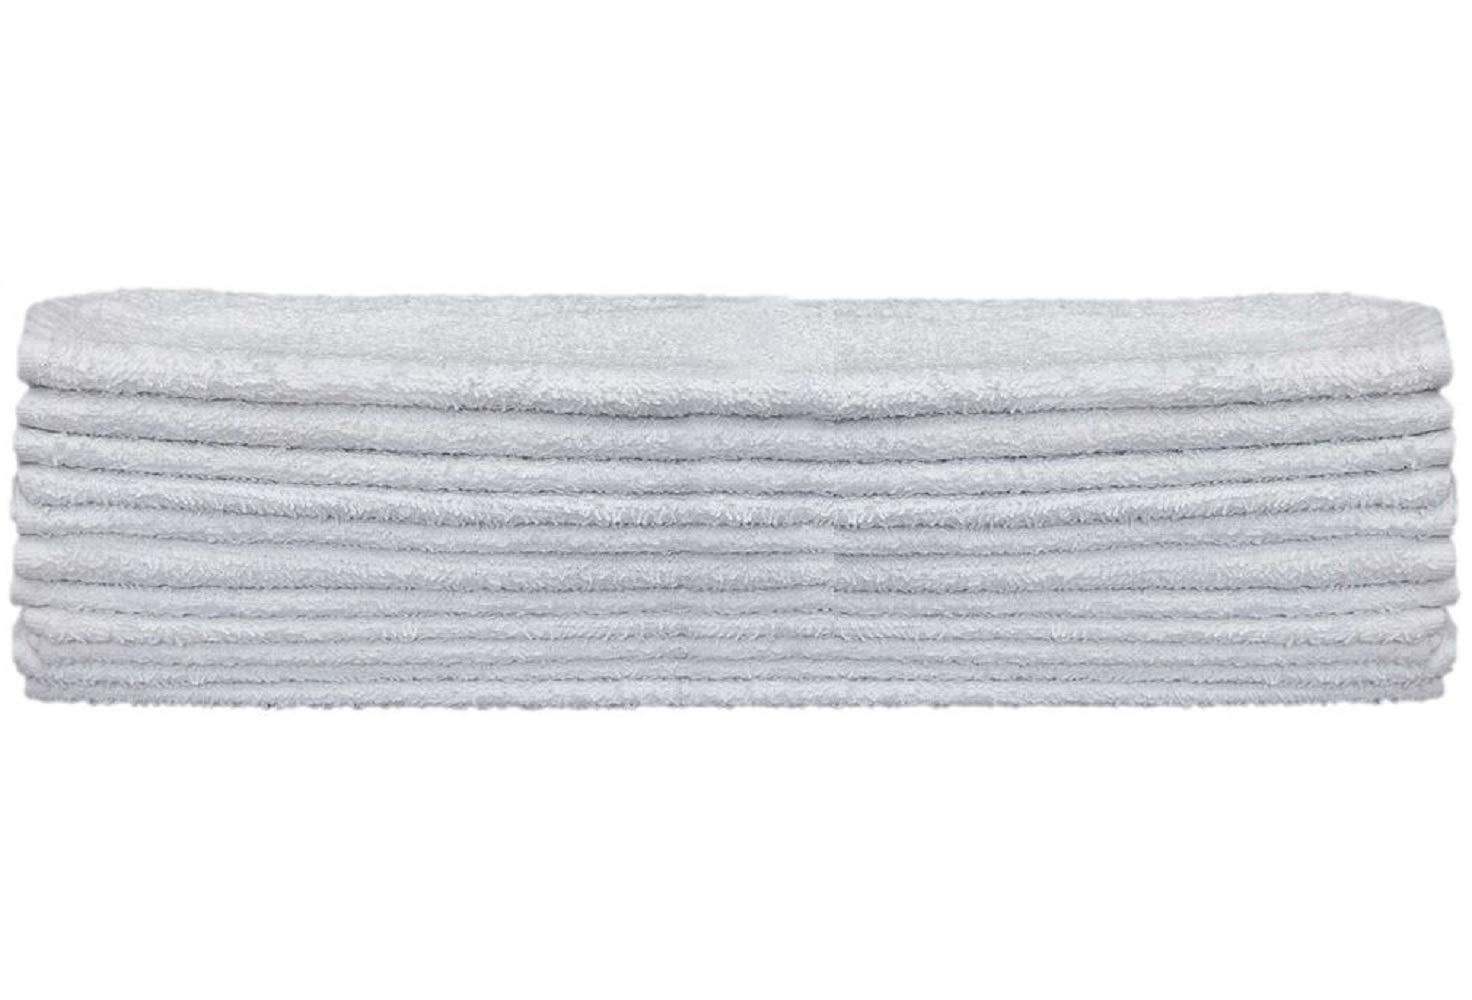 JMR Kitchen Bar Mops Cleaning Towels 12/24 Pack,16x19 Inch,Cotton,Restaurant Towels Cleaning Towels Or Home Kitchen Shop Towels and Rags (24, White)